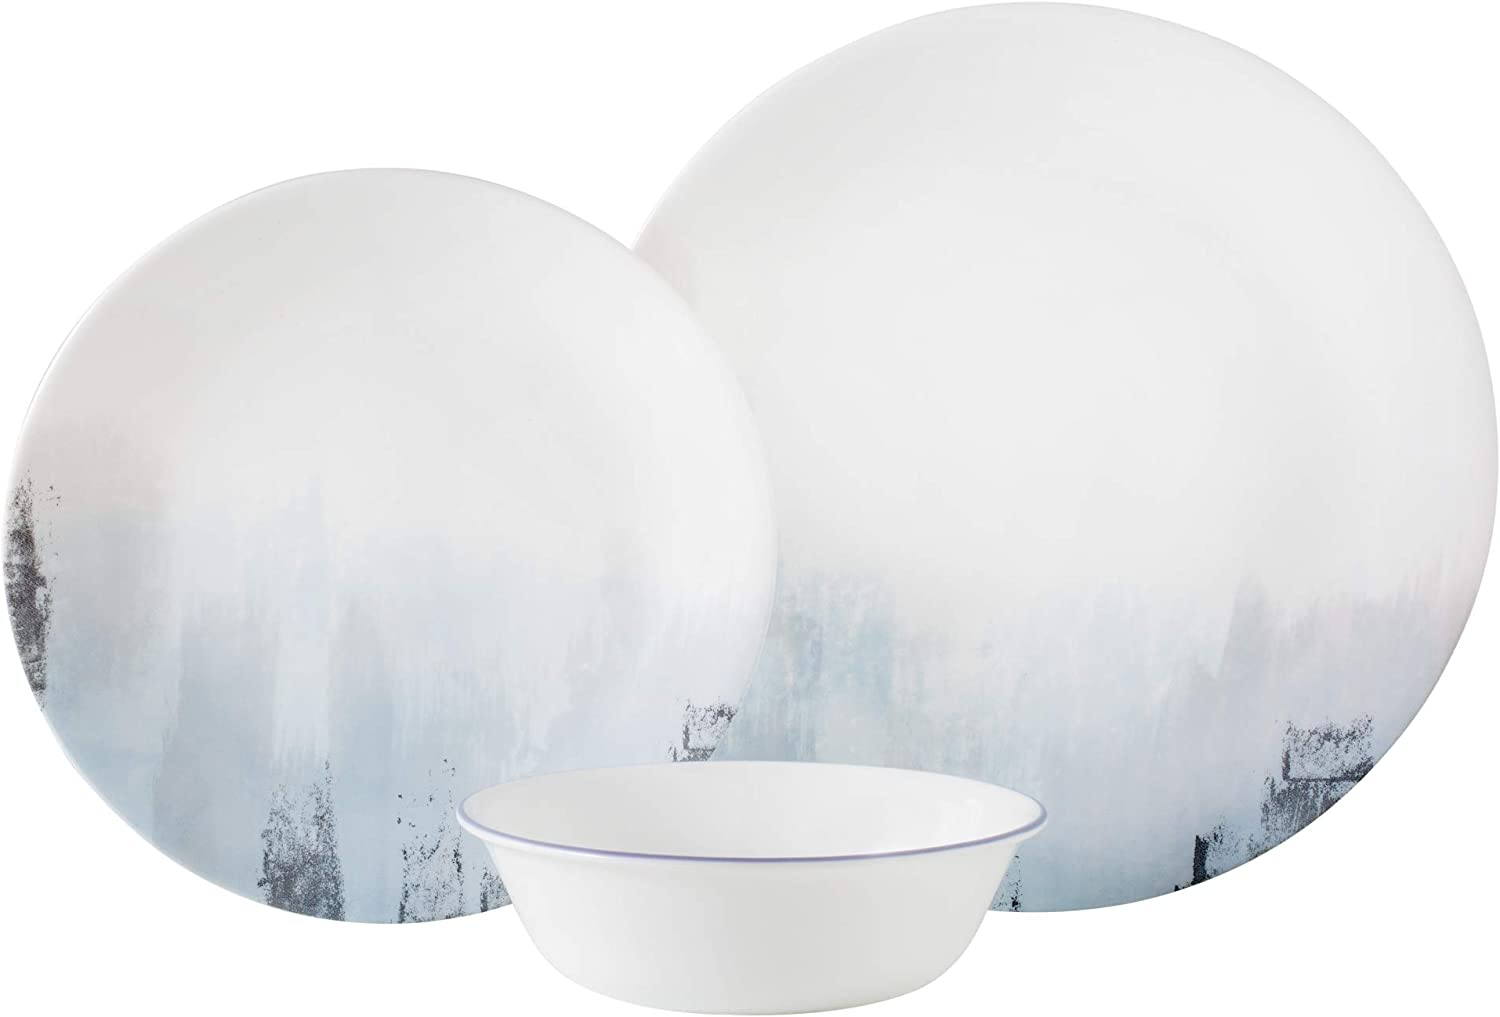 Corelle Boutique Tranquil Reflections 12-Piece Dinnerware Set, Service for 4